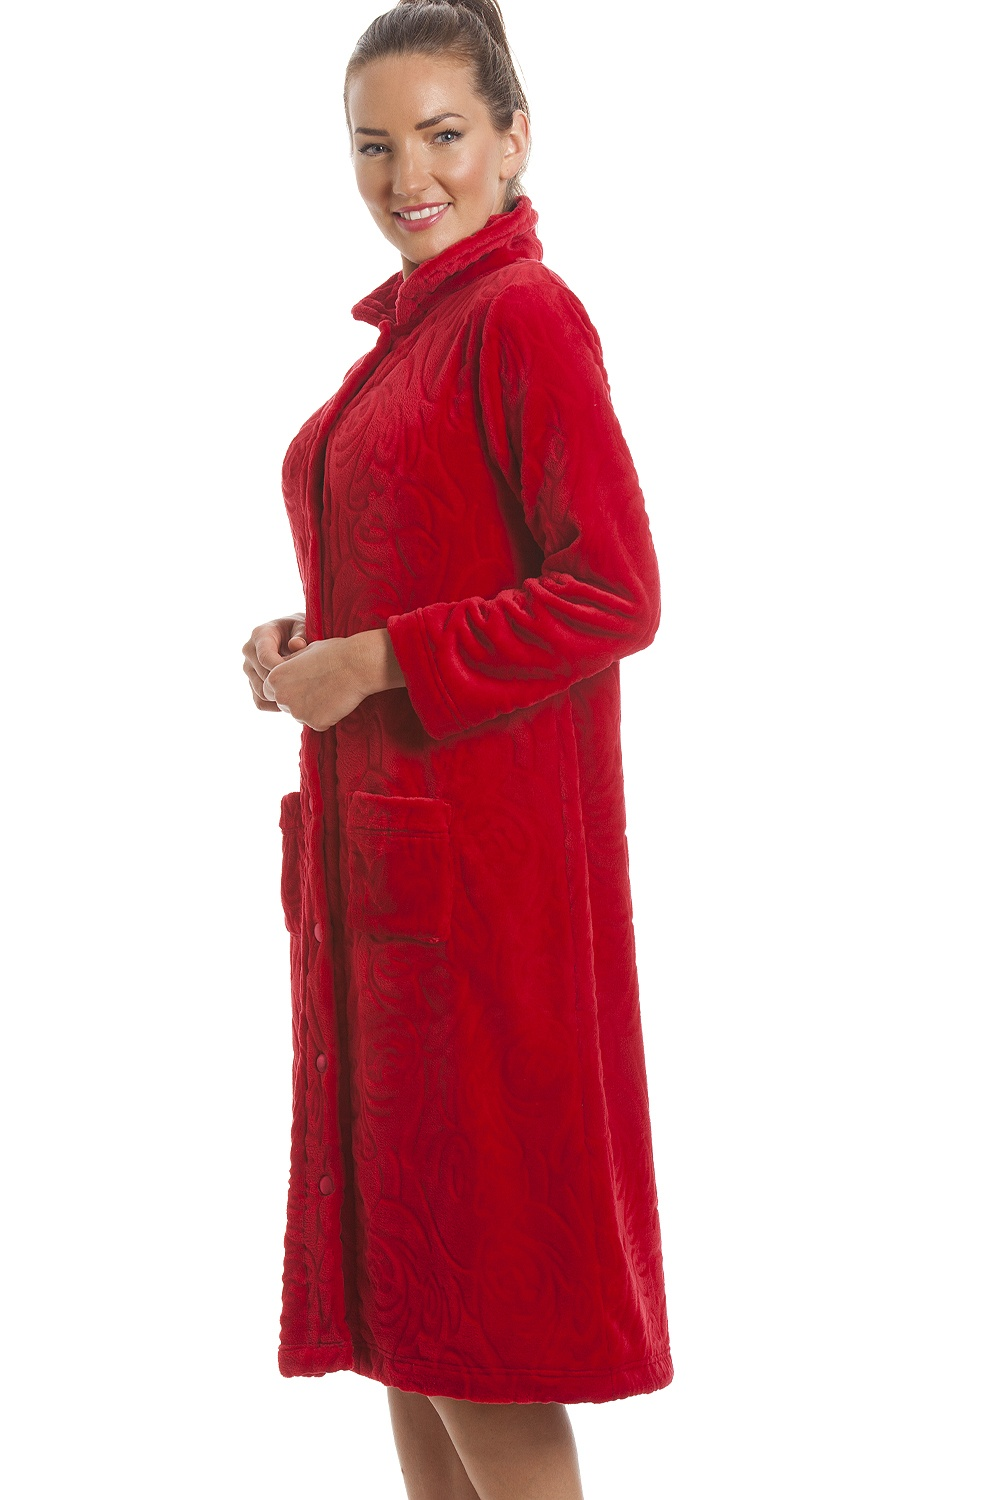 6dfc18e8d7 Camille Luxury Supersoft Red Button Up Fleece Housecoat